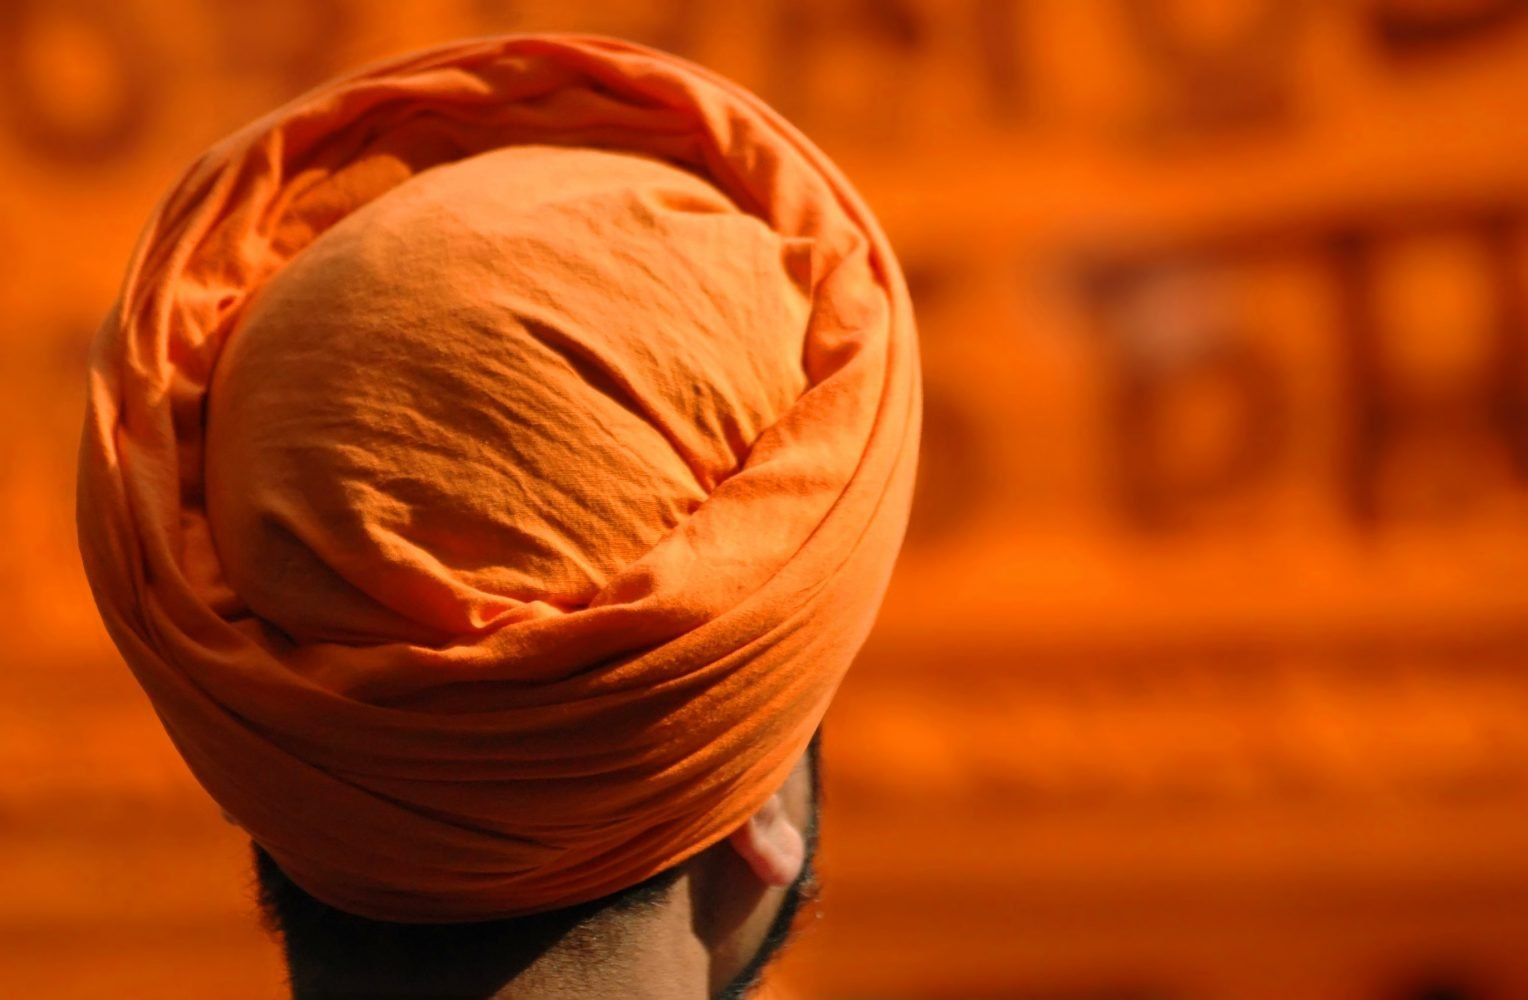 An American Muslim imam's letter to the American Sikh community